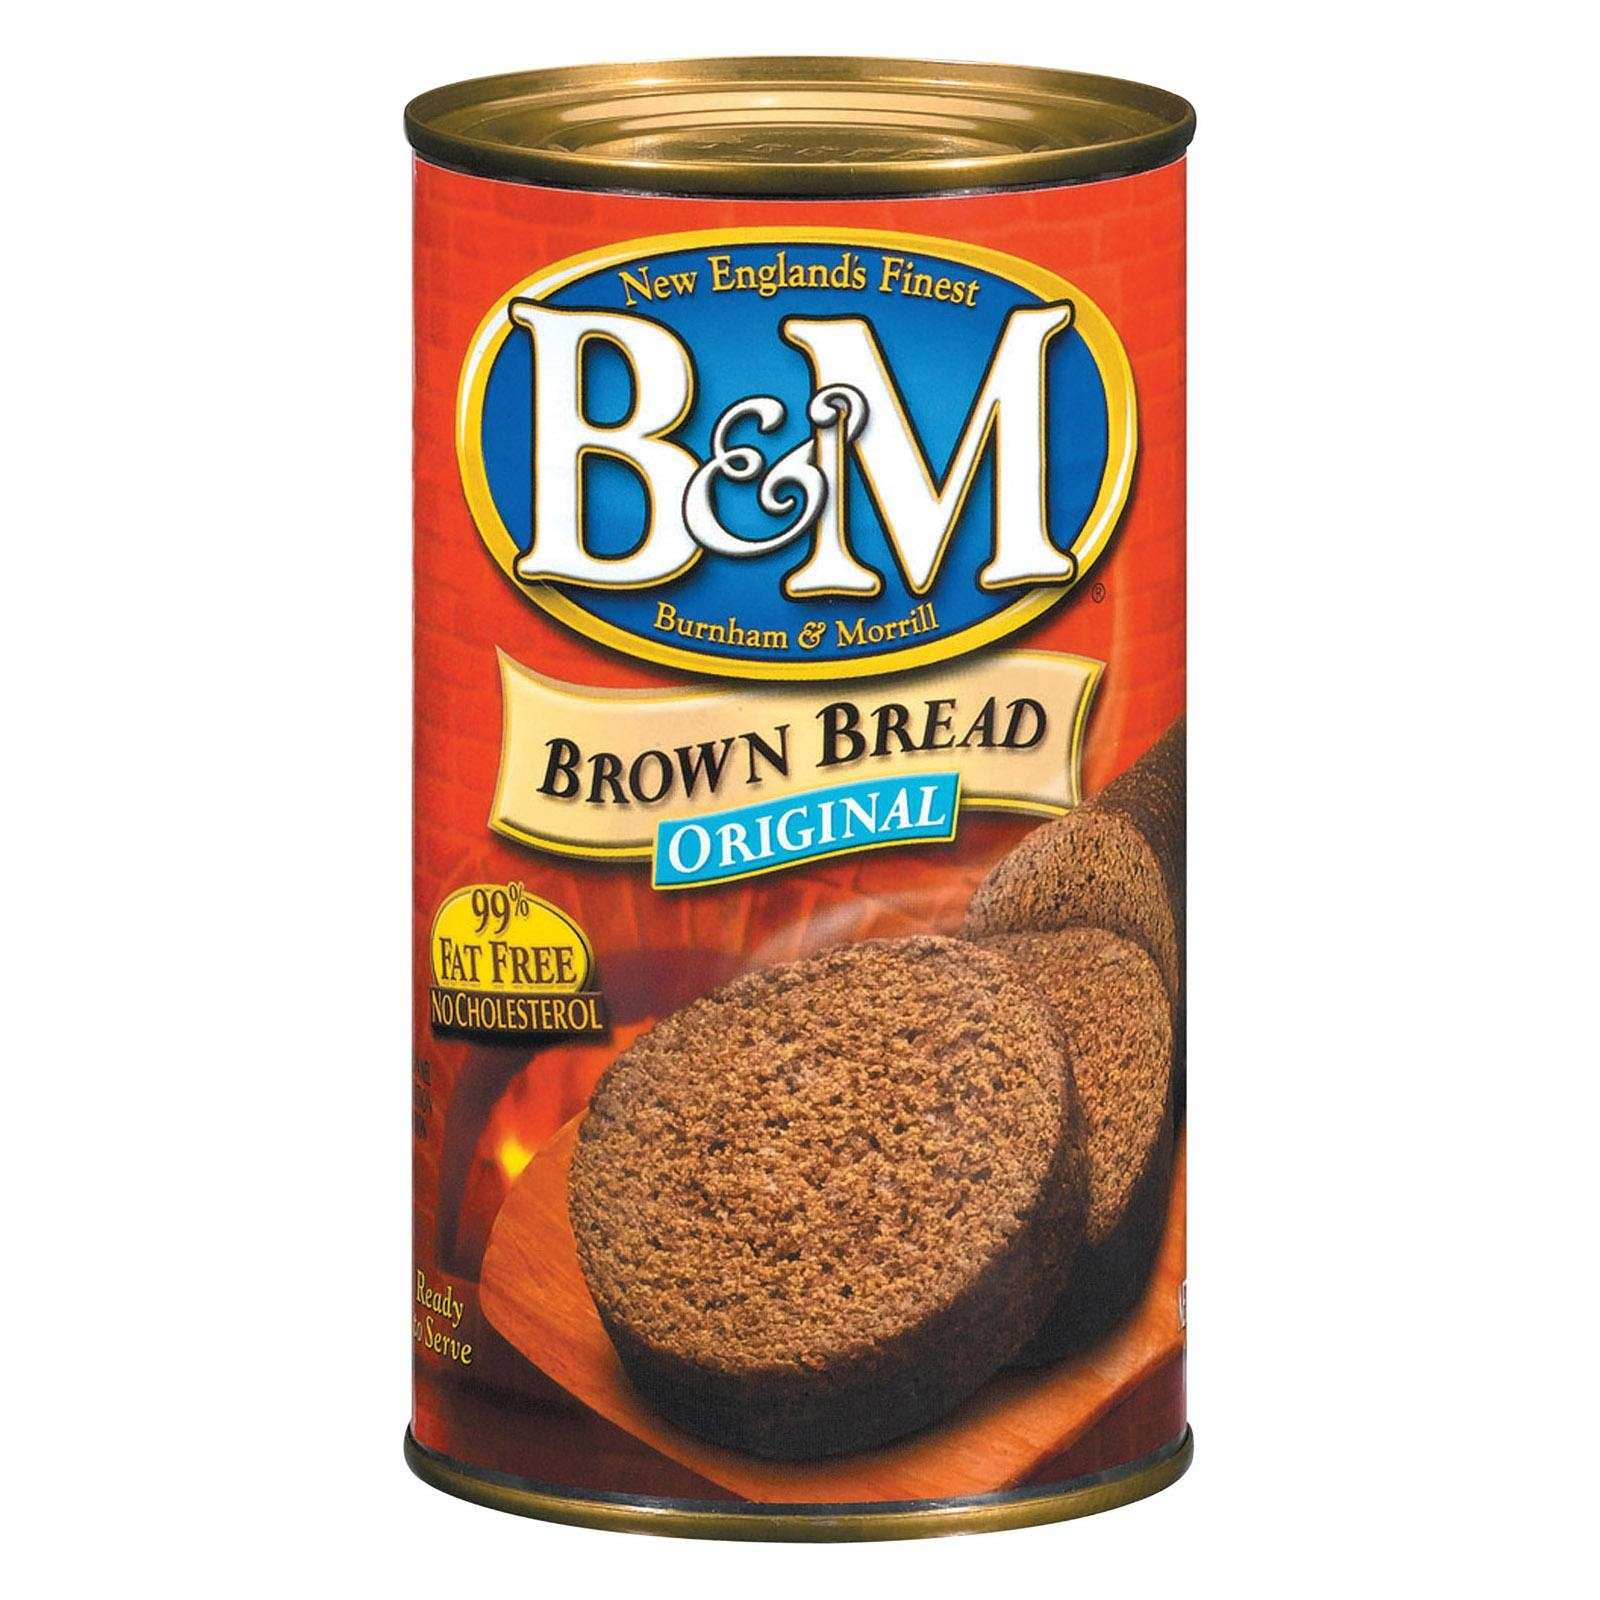 Brown bread.